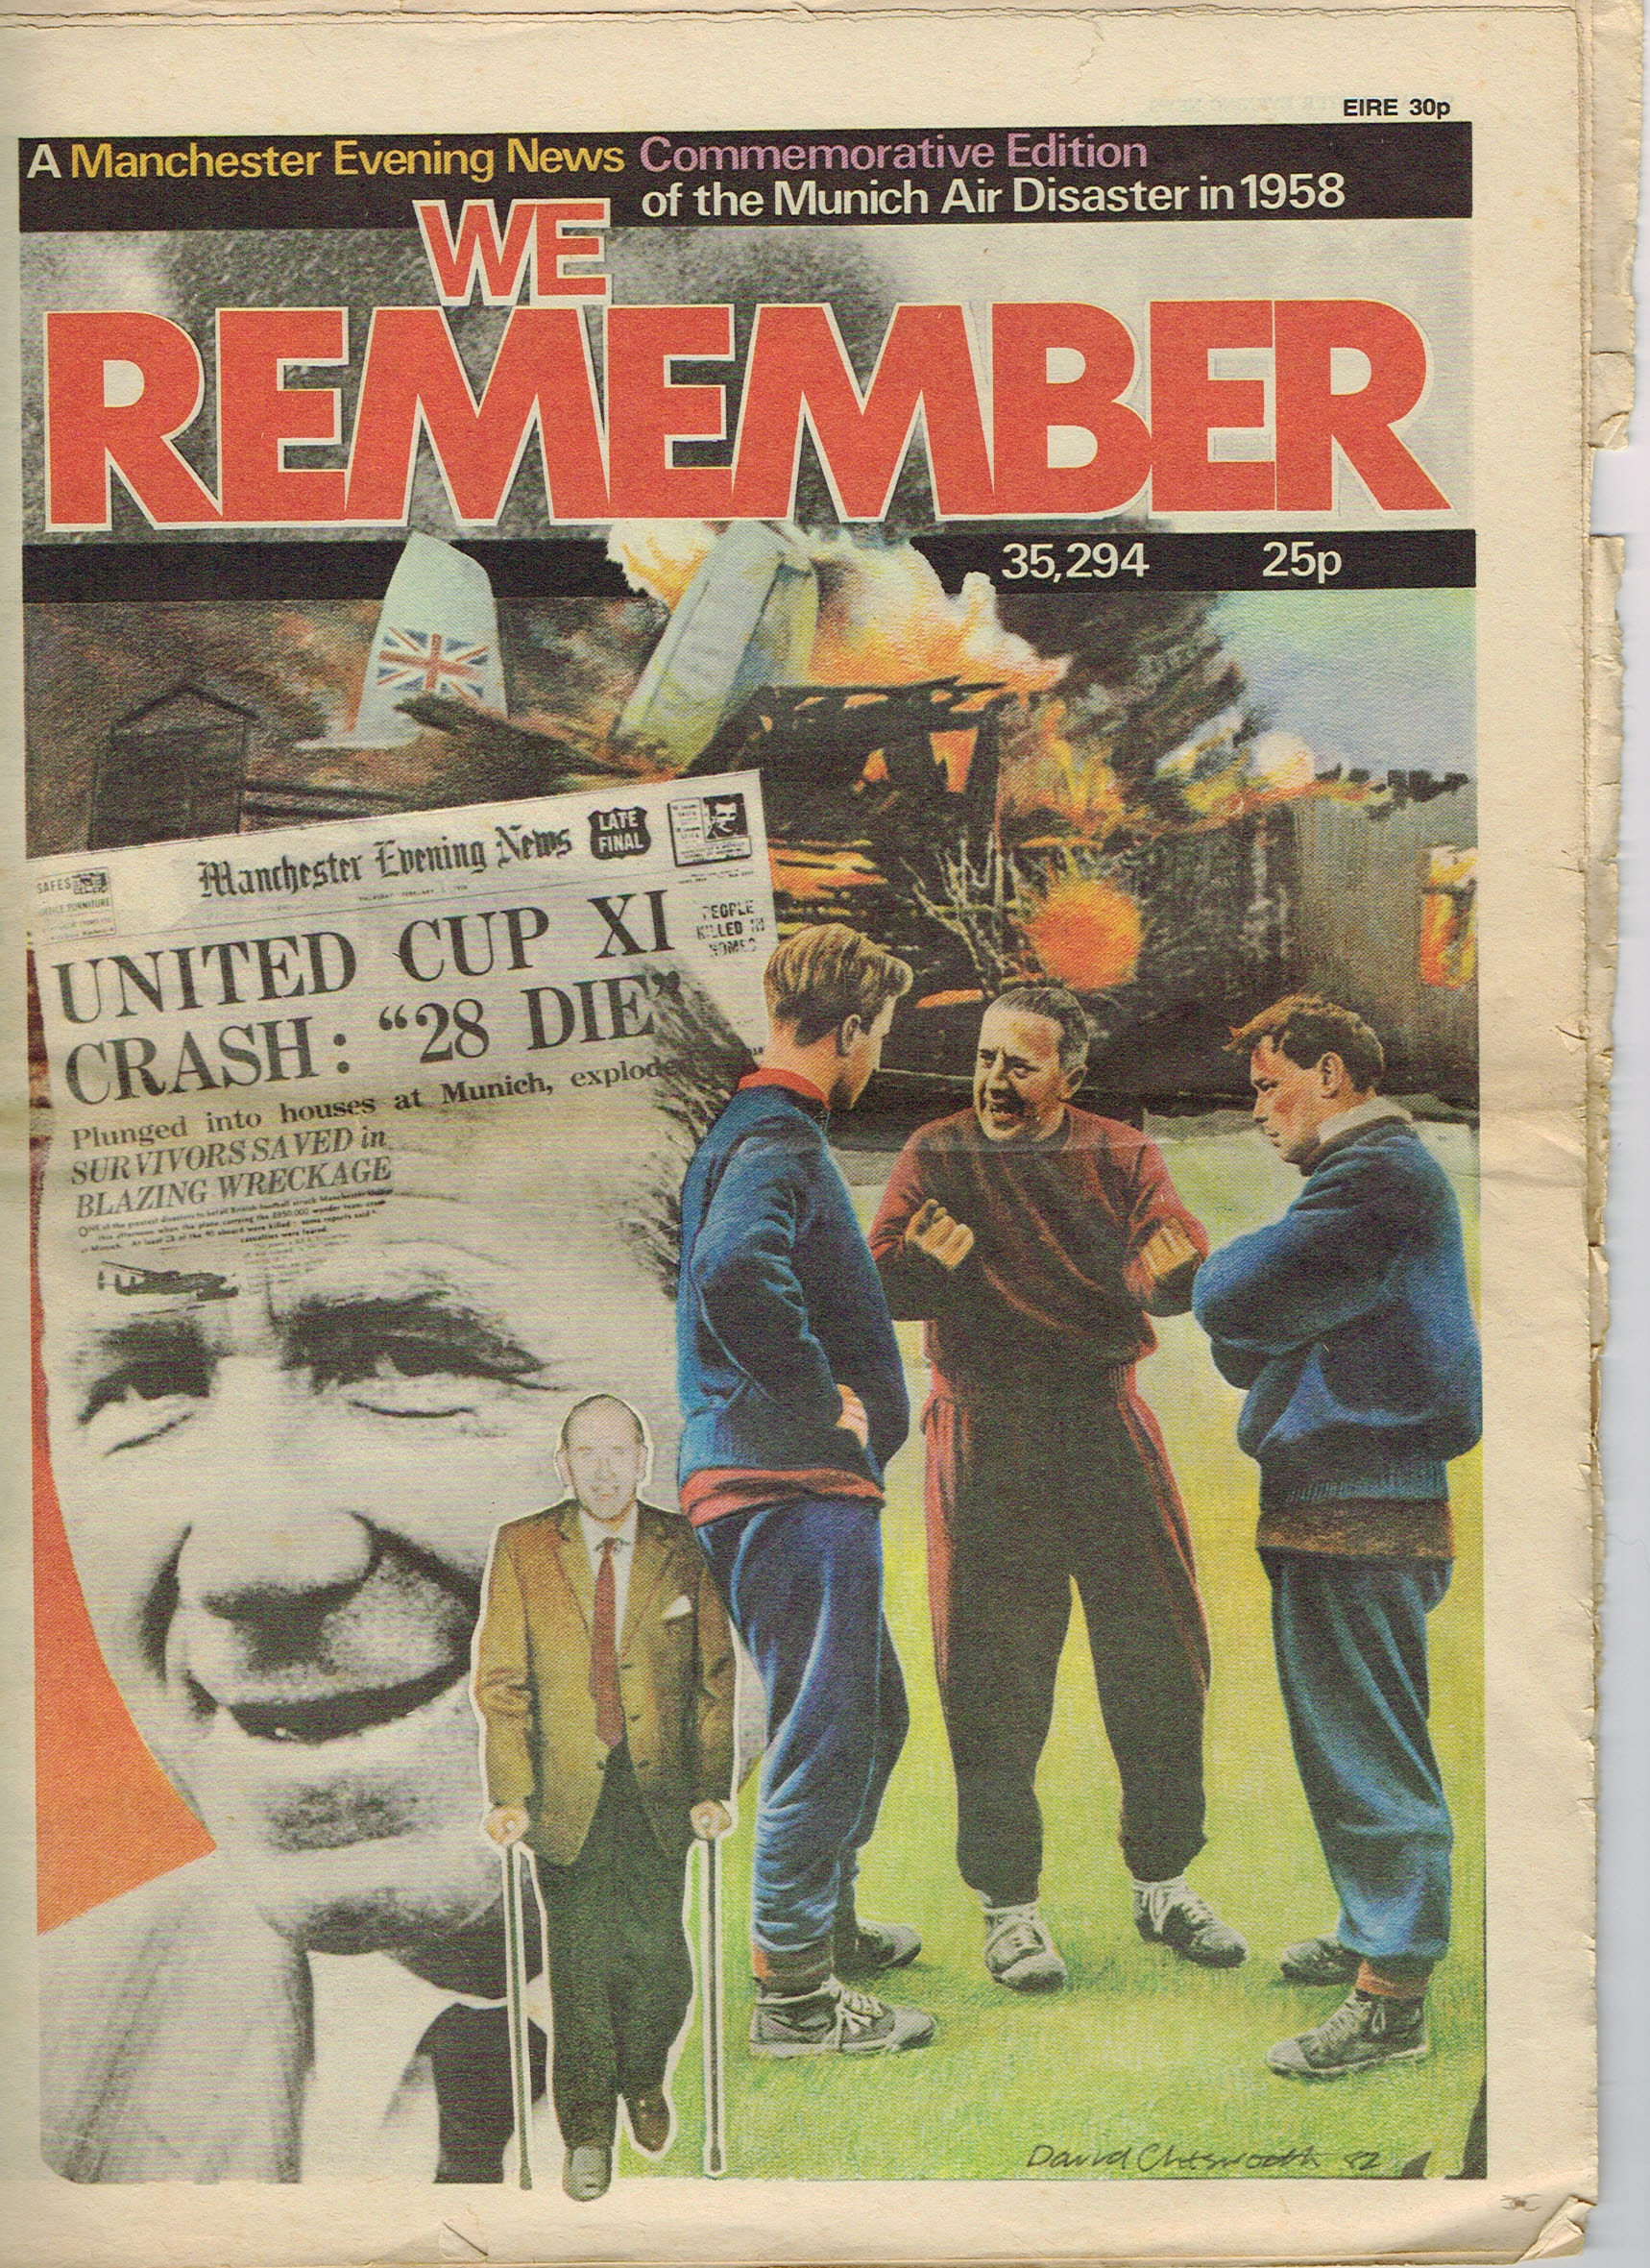 Munich Air Disaster in 1958 Manchester Evening News Vintage Newspaper refS4 36 page We Remember Commemorative Edition price 30p EIRE newpaper is pre-owned in well read condition.